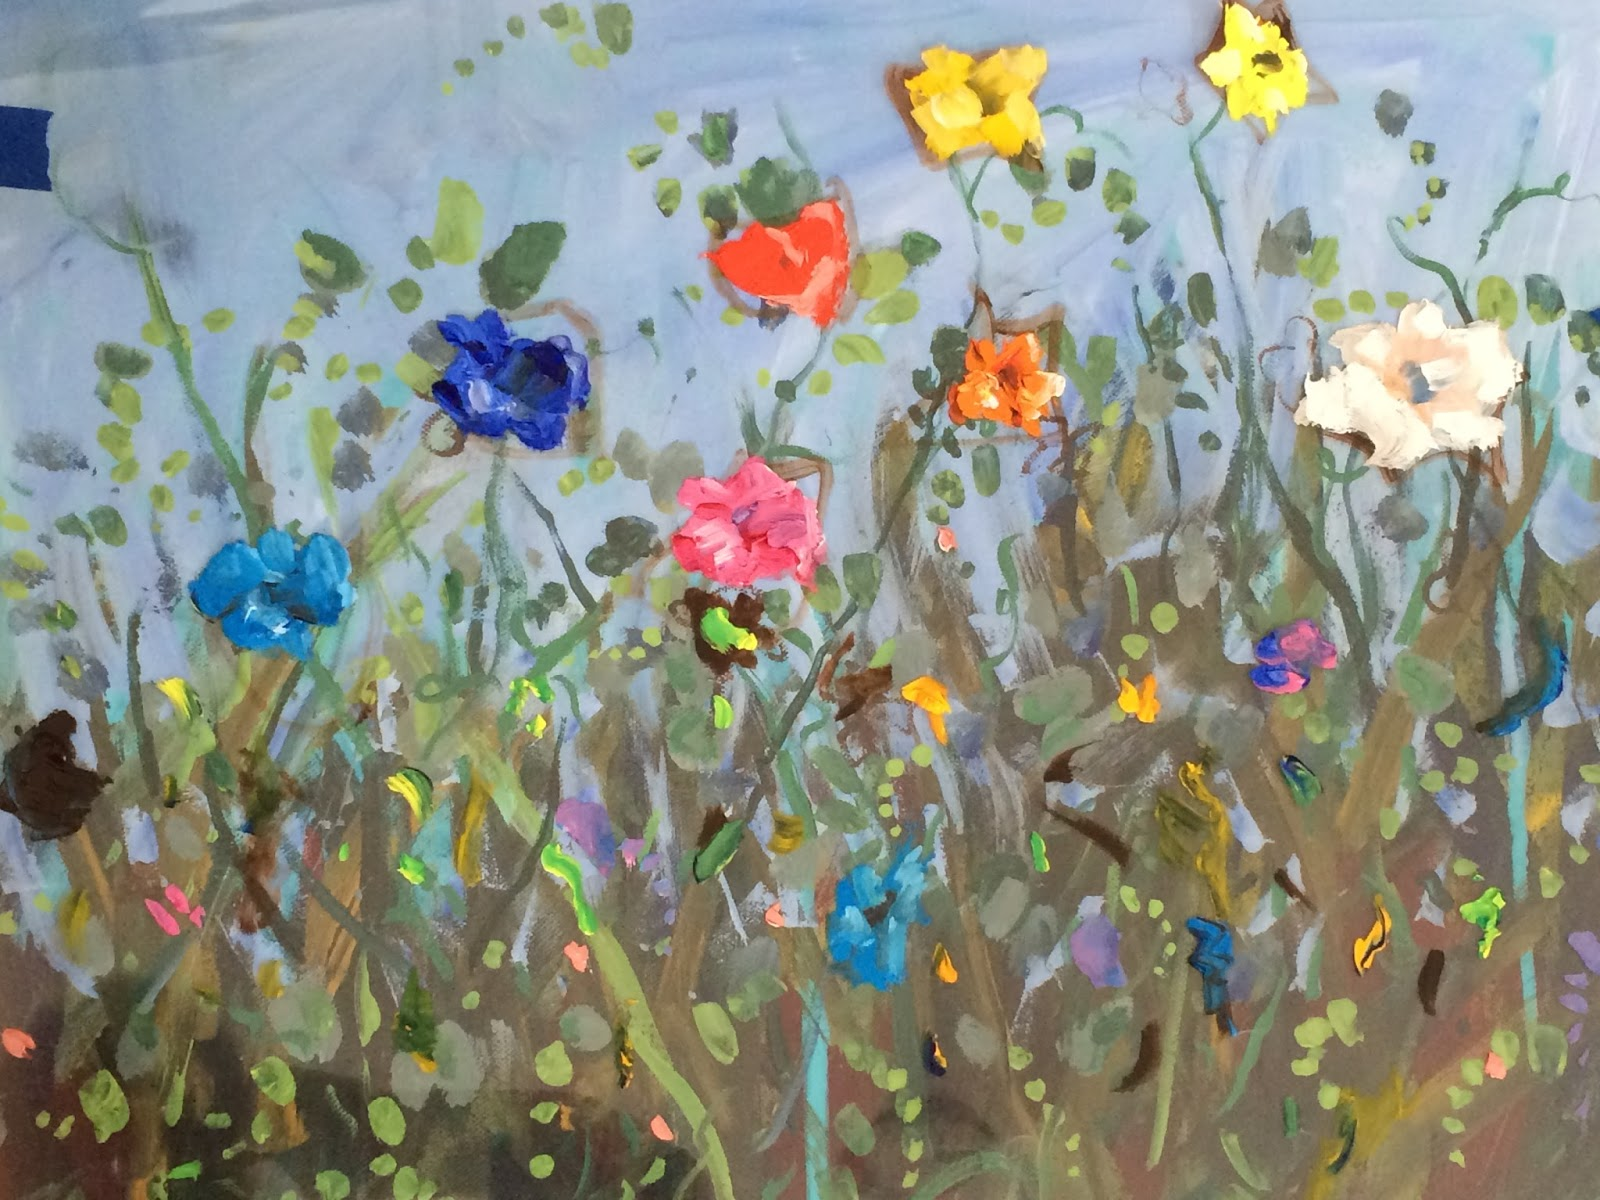 Kelley macdonald 39 s daily paintings garden of color 16x20 for Acrylic mural paints